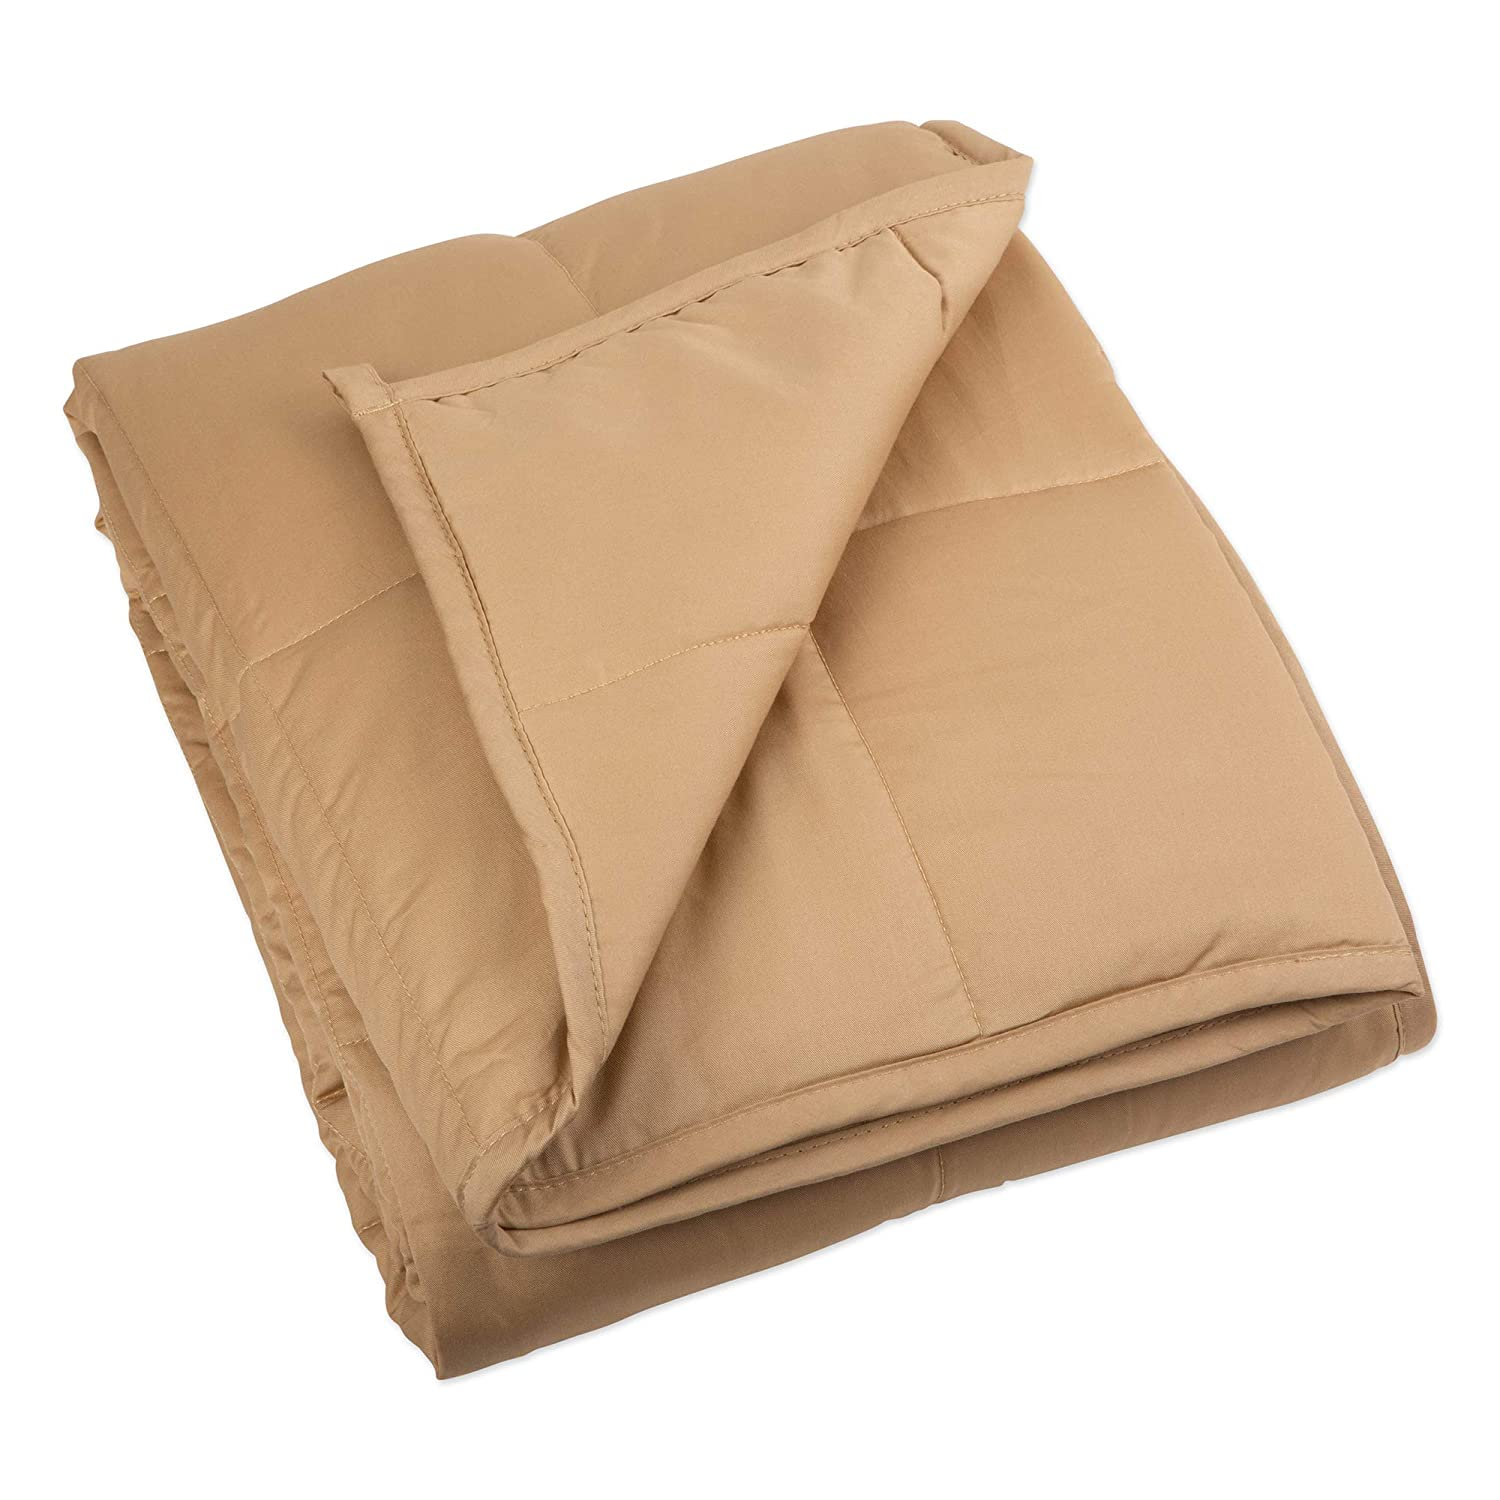 "CDM product DII Bucky Z02292 Weighted Blanket for Anxiety, ADHD, Autism, Insomnia, Stress Relief, 100% Cotton with Hypo-Allergenic Glass Beads, Fits Queen Sized Bed, 60""X80""-20Lbs, Taupe big image"